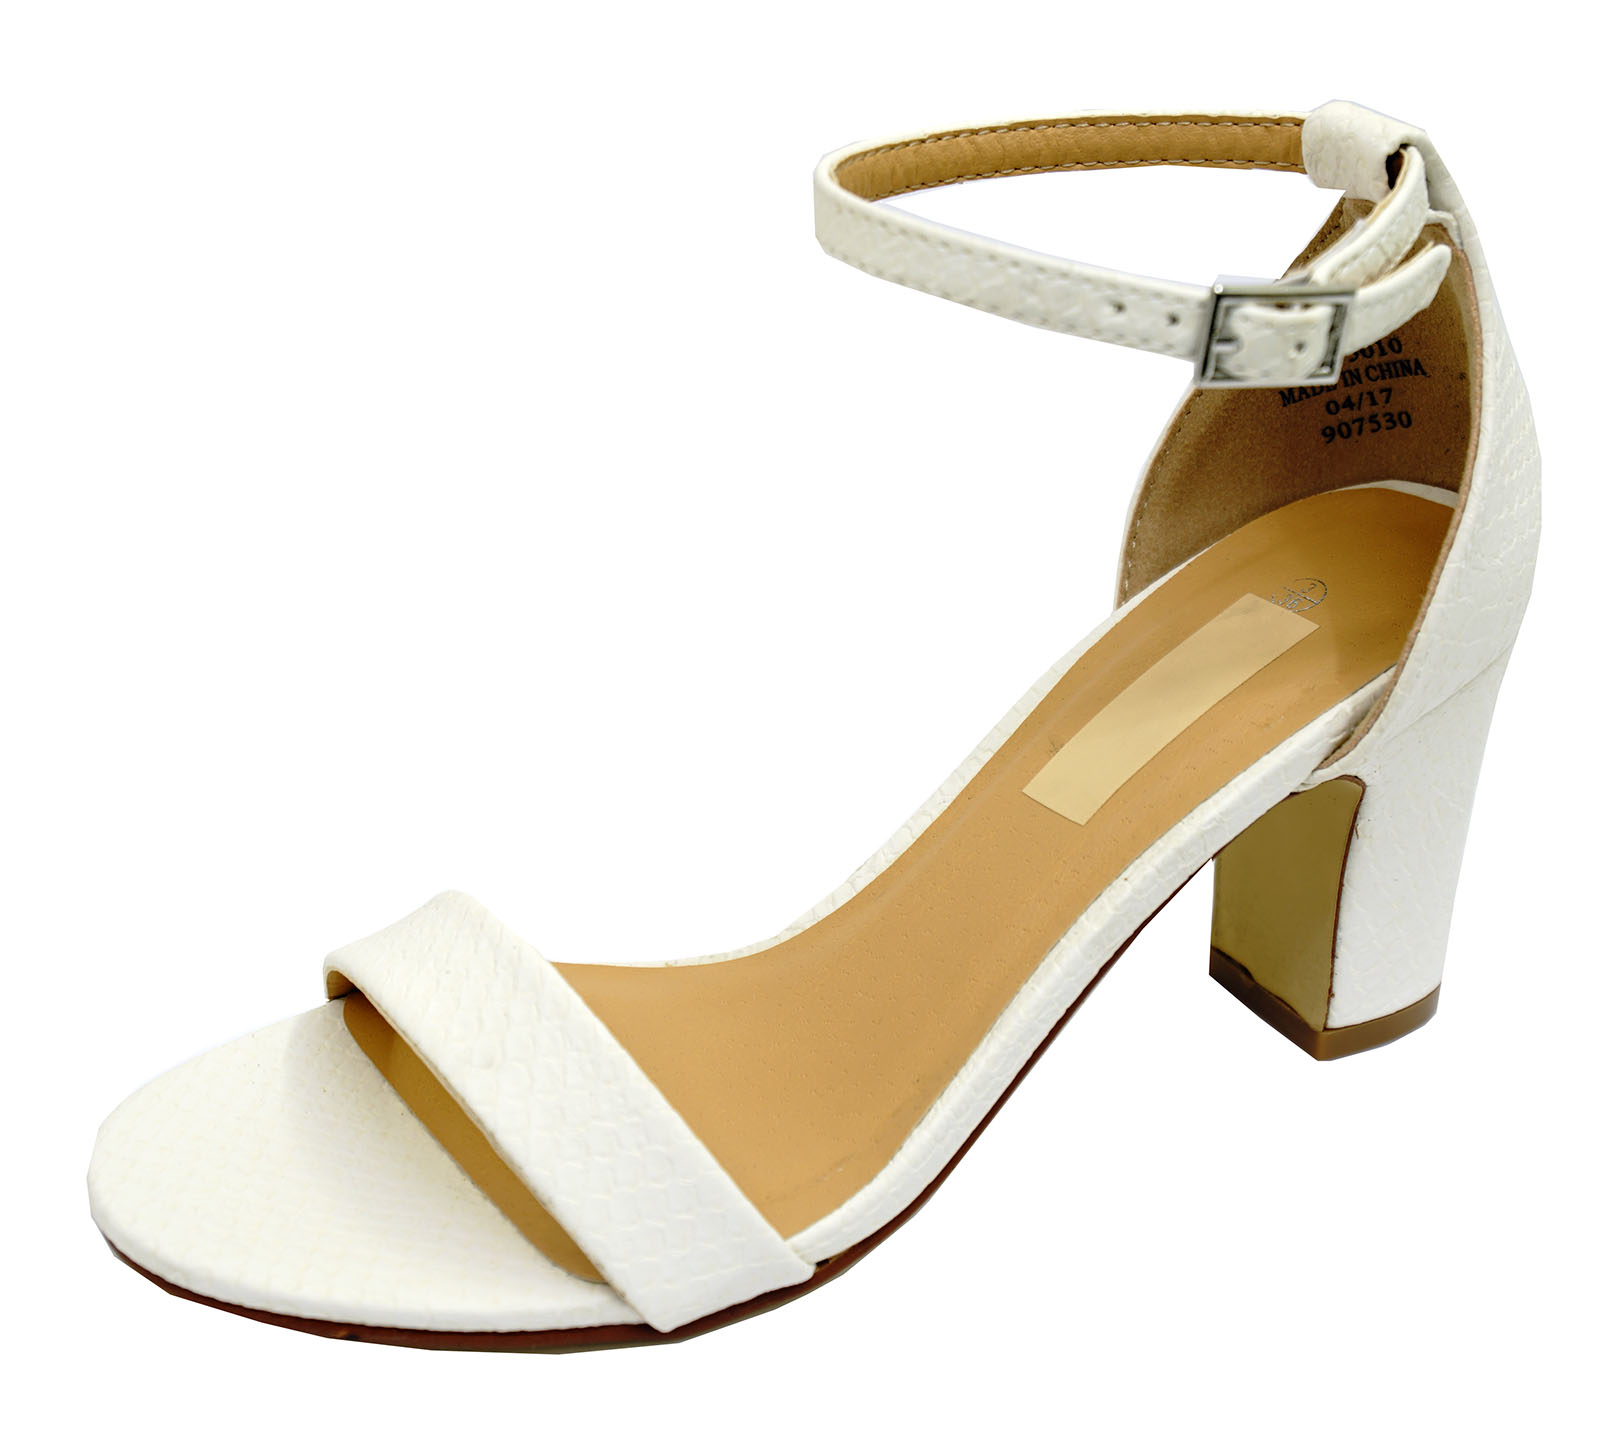 LADIES-WHITE-ANKLE-STRAP-BLOCK-HEEL-PEEPTOE-SANDALS-HOLIDAY-COMFY-SHOES-UK-3-8 thumbnail 14